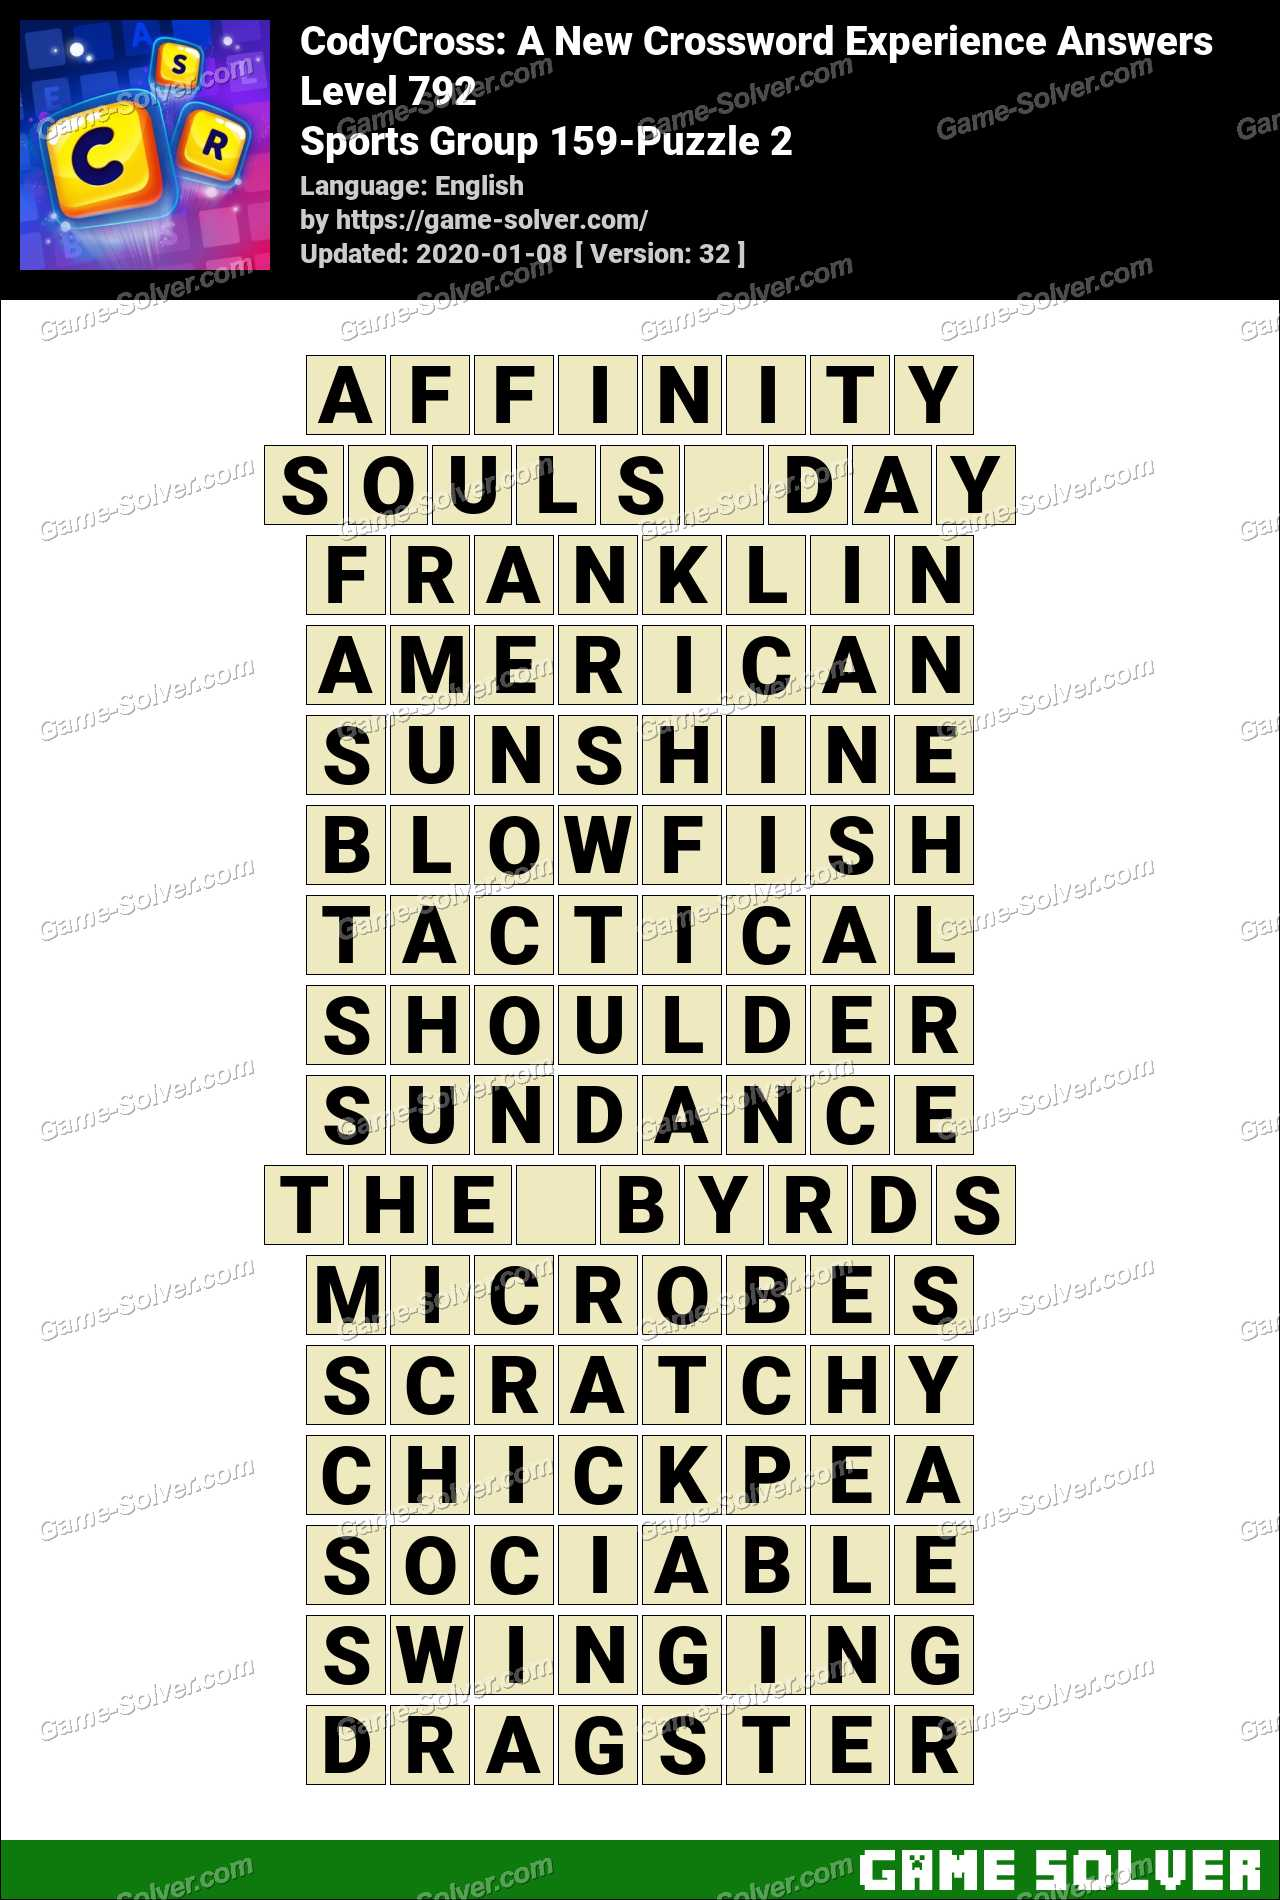 CodyCross Sports Group 159-Puzzle 2 Answers